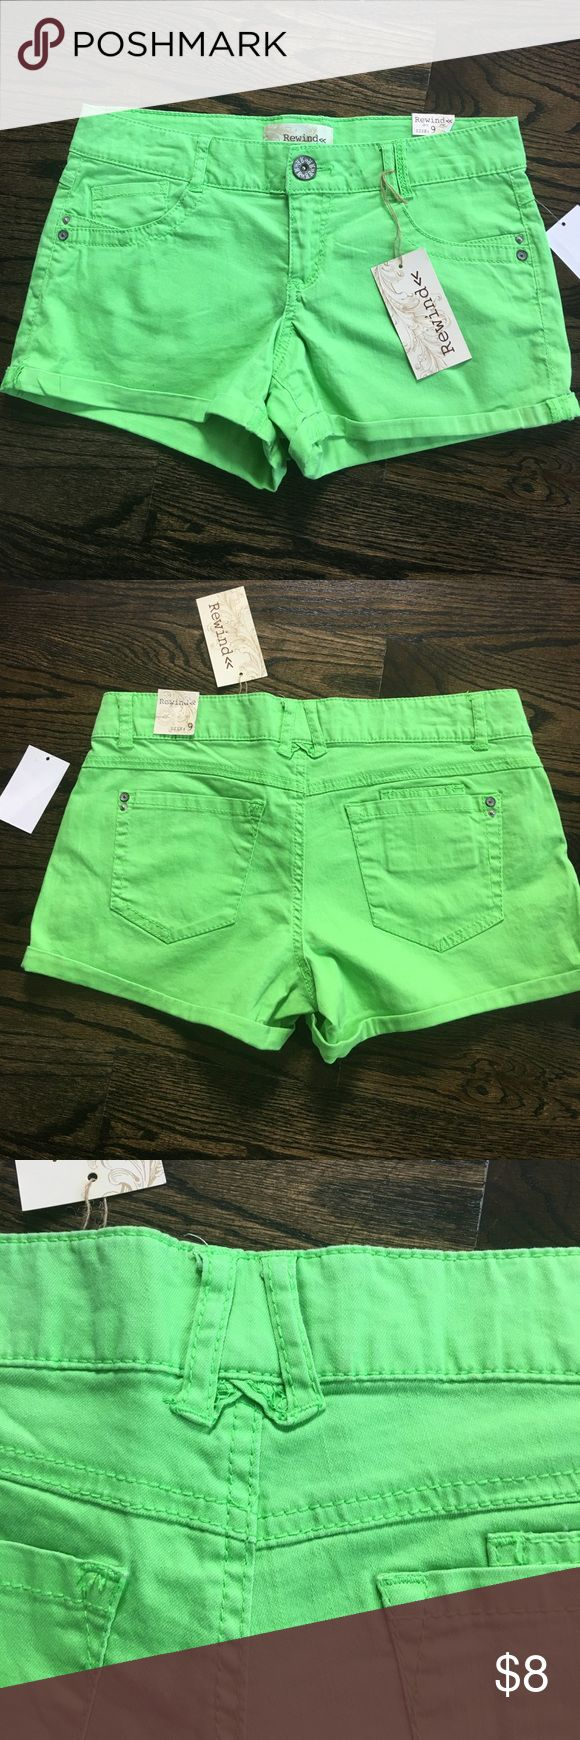 """REWIND Neon Green Shorts Size 9 REWIND Neon Green SHORTS NWT Super Cute!  RN# 39831 Style# R700WRGD  Made in China 98% Cotton 2% Spandex SIZE 9 WAIST 32""""  RISE 8"""" INSEAM 14.5"""" CONDITION: New Condition Great Buy for Summer!  Will Ship Immediately. Rewind Shorts Jean Shorts"""